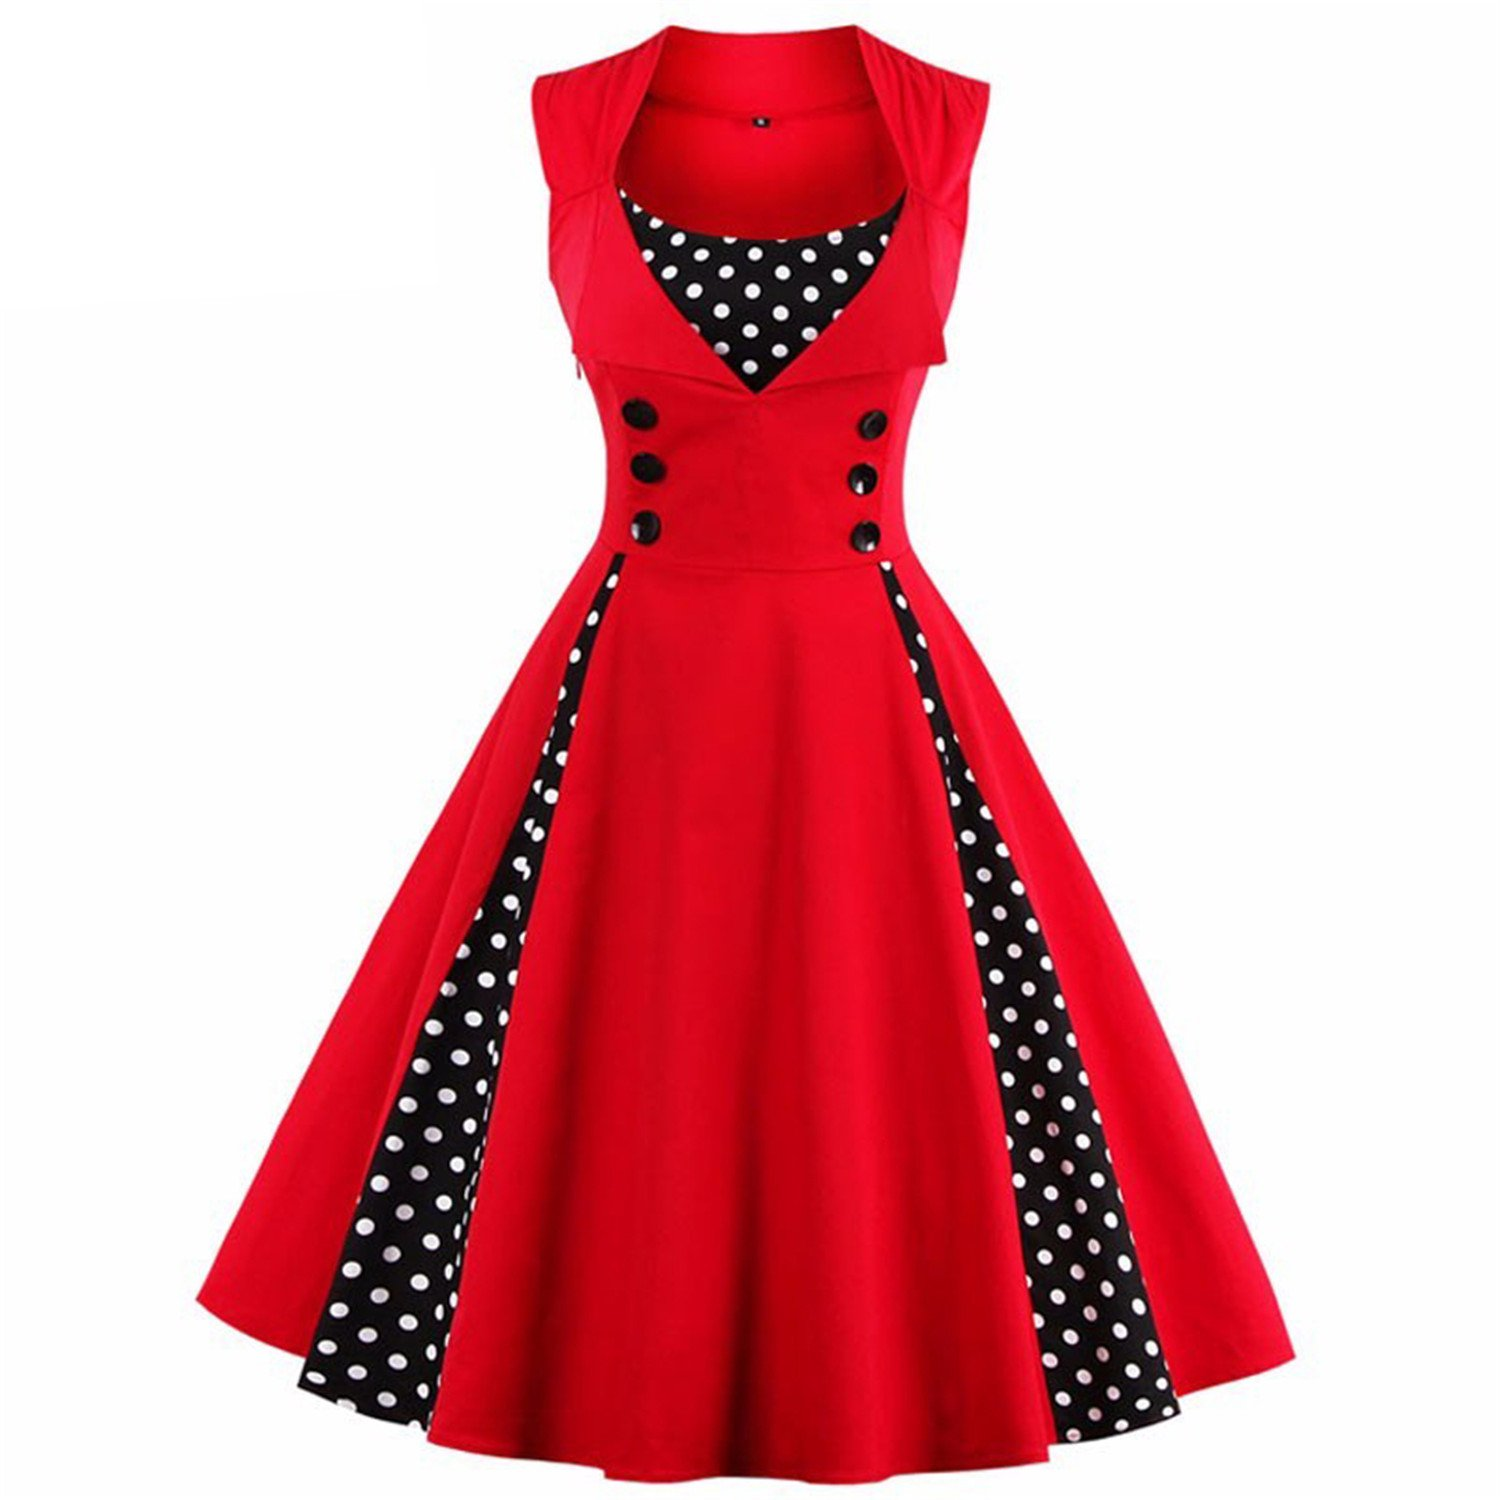 Women Pin Up Dress New Vintage Rockabilly Swing Summer Elegant Tunic Vestido female Dresses at Amazon Womens Clothing store: